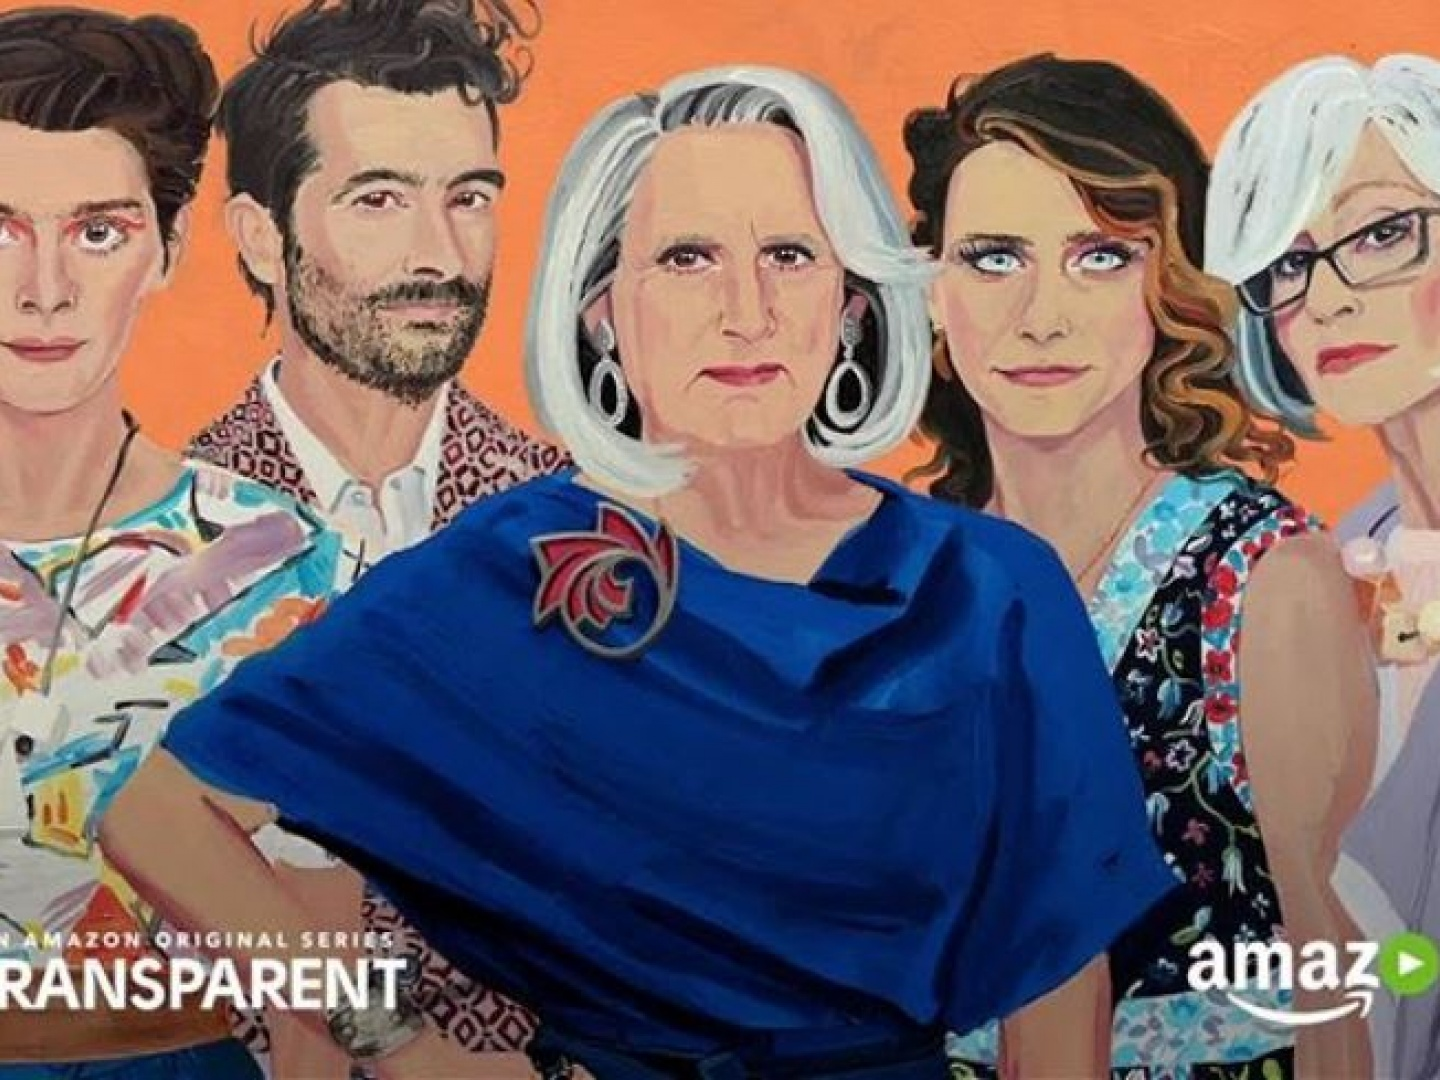 Transparent Season 3 Official Trailer Thumbnail